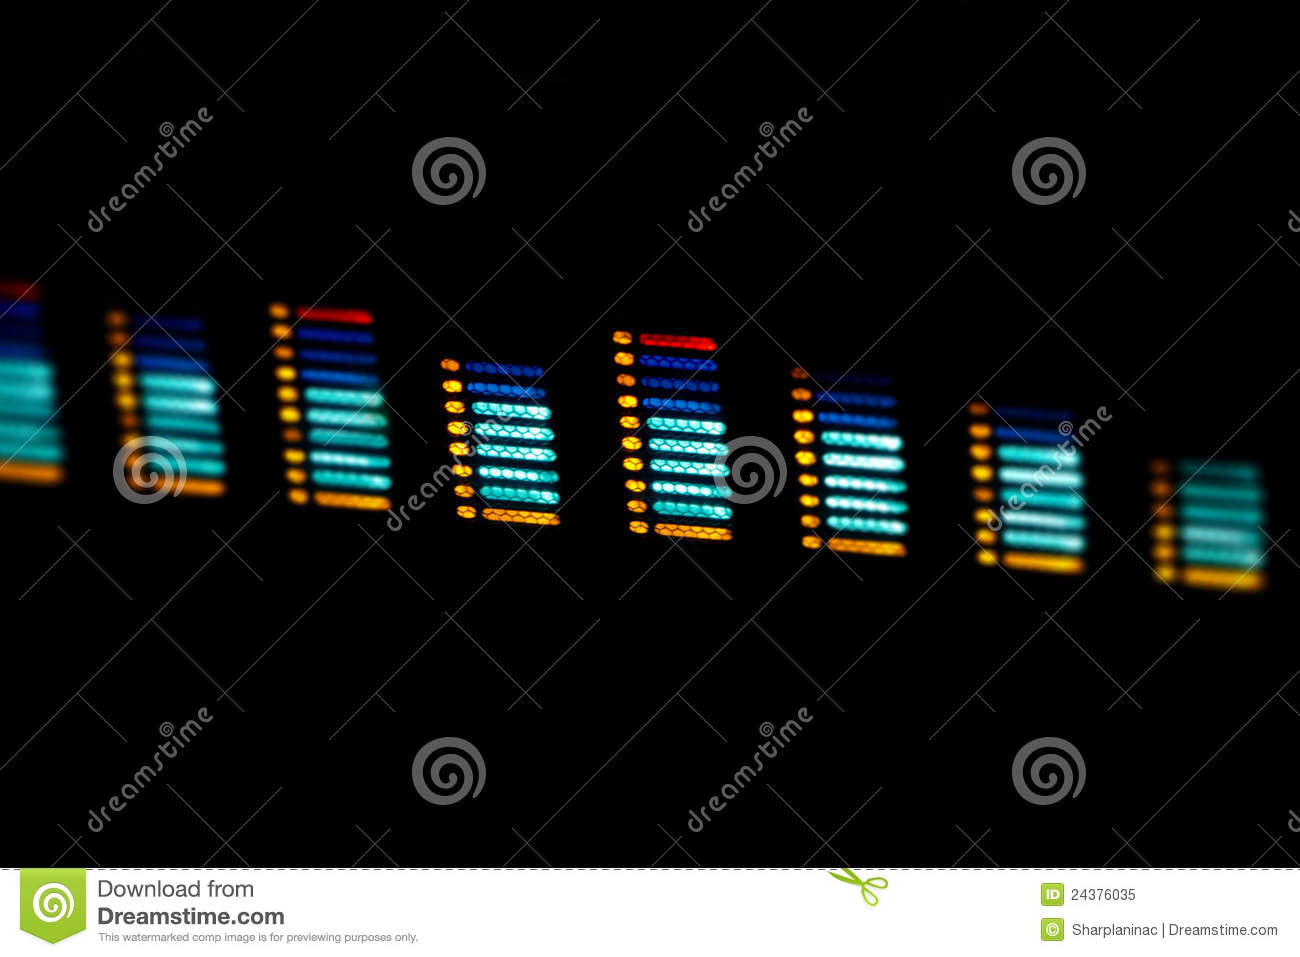 Digital Sound Waves Over Black Background Royalty Free Stock Photo ...